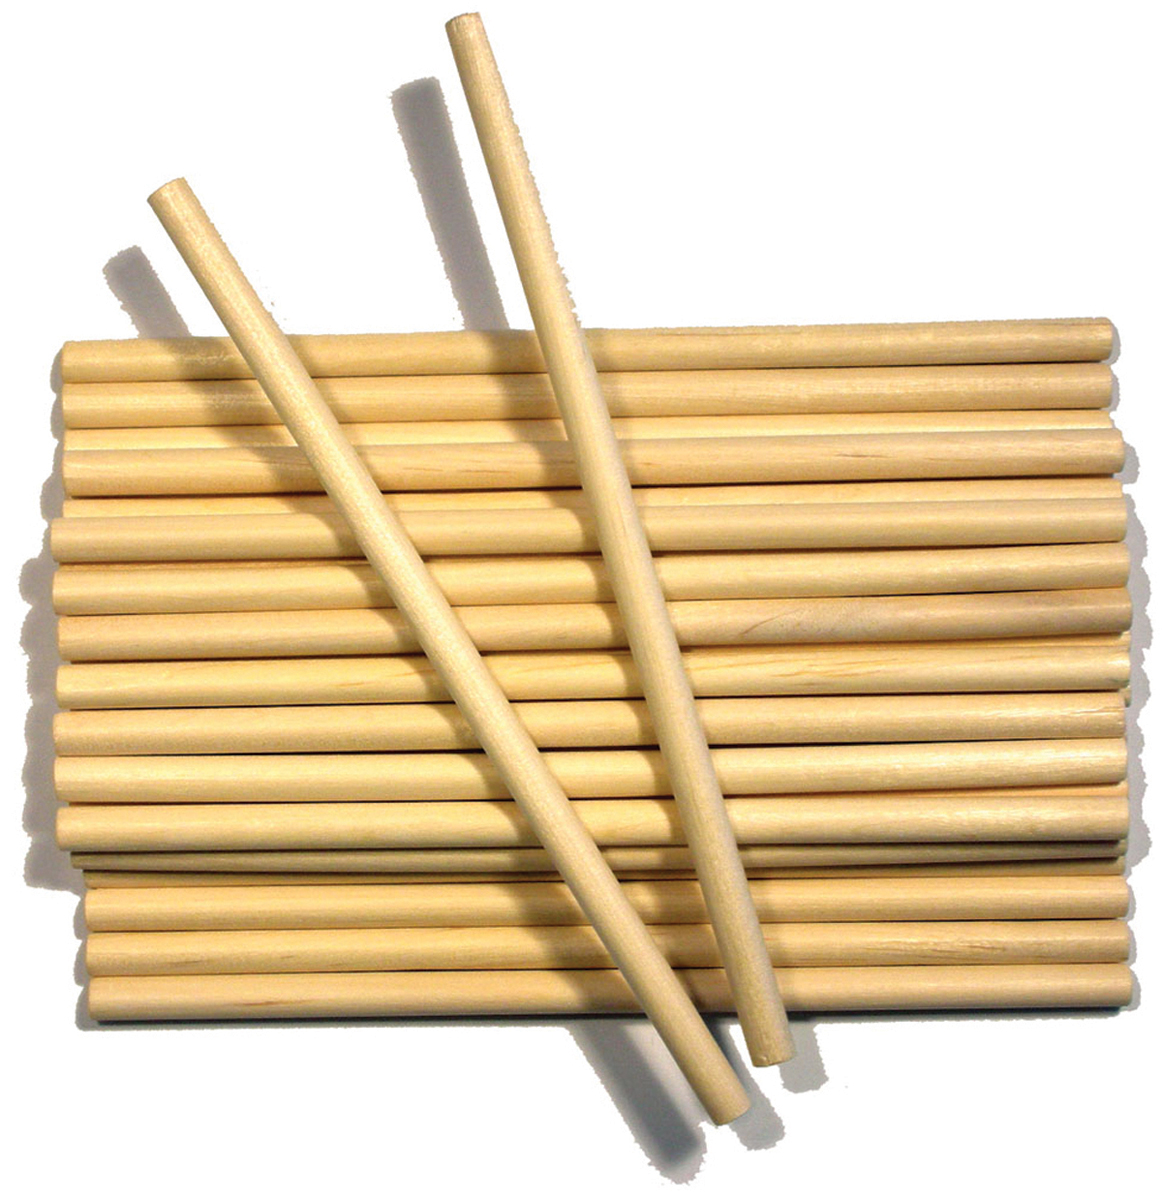 Wood Craft Dowels 6`-1/4` 30/Pkg Multi-Colored